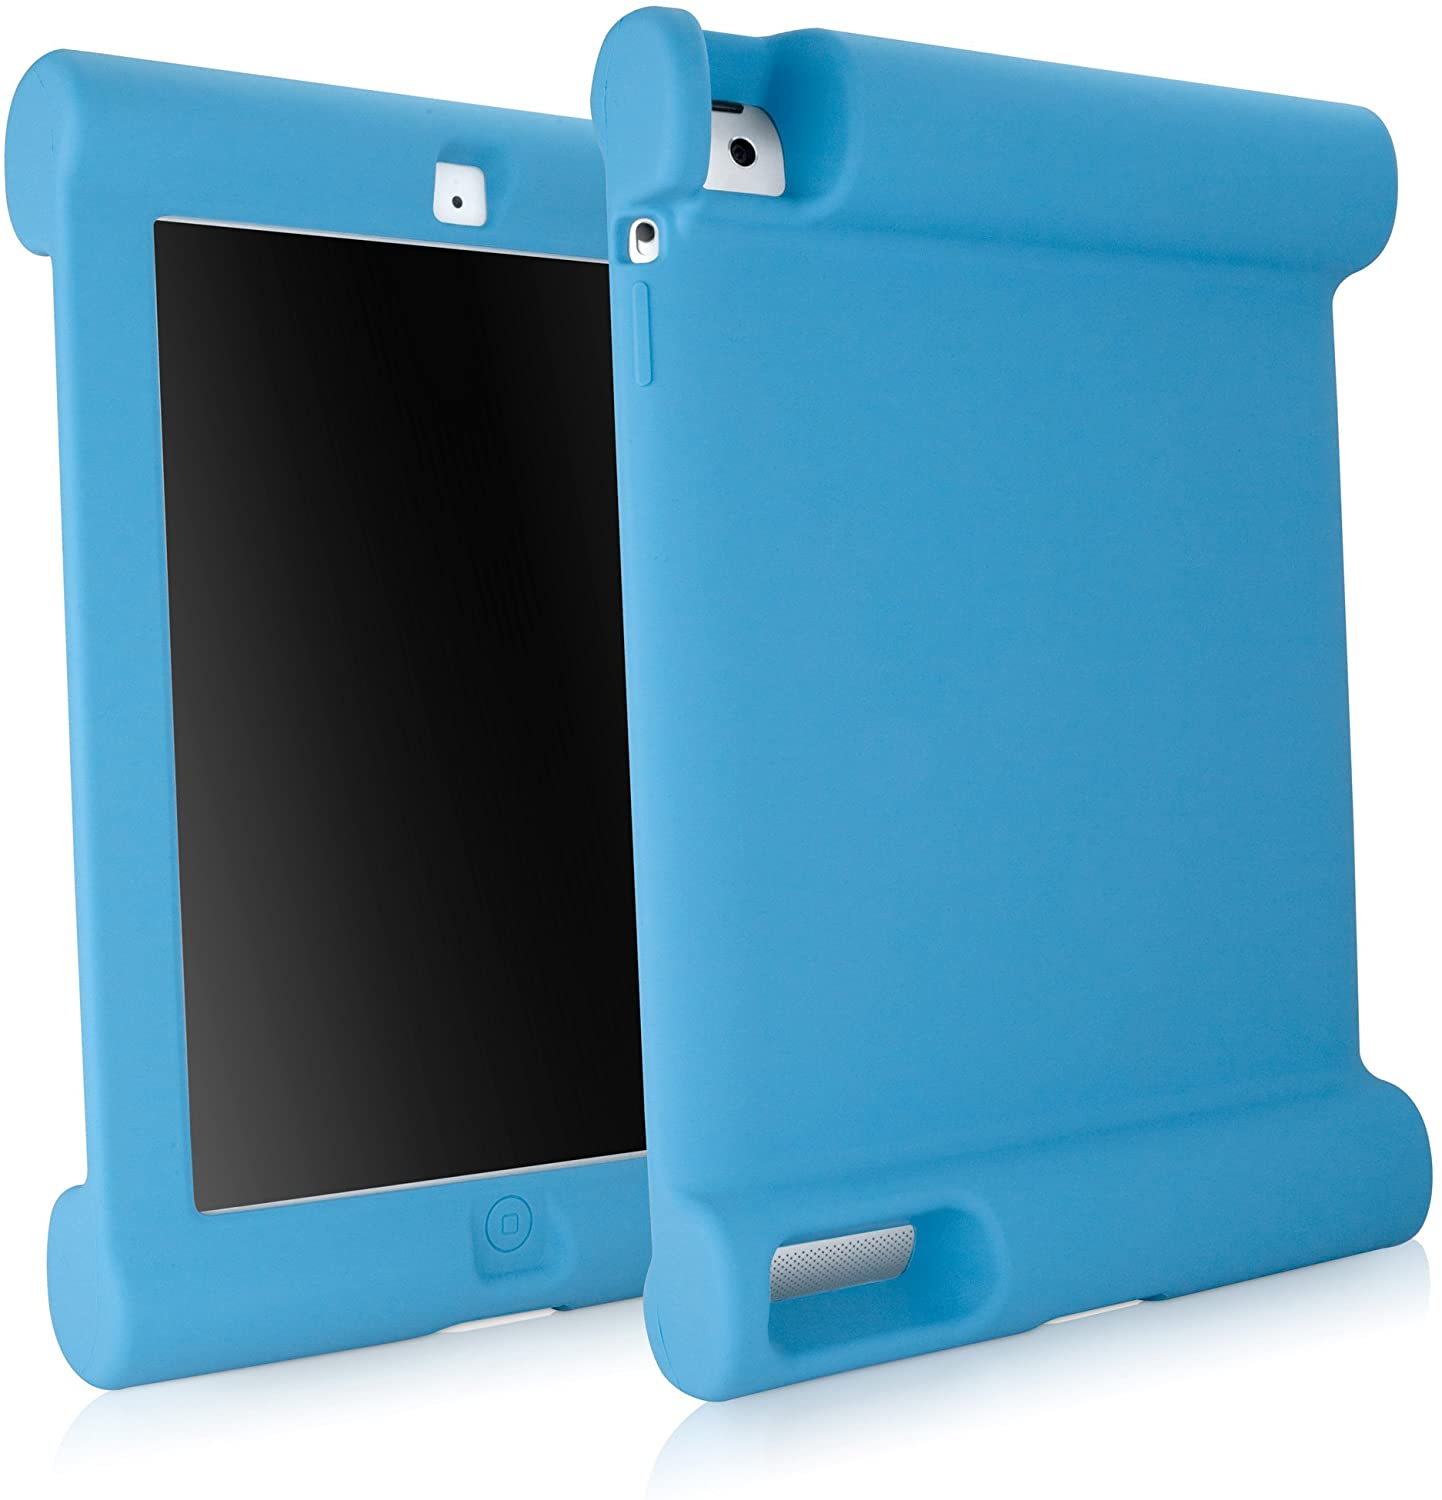 iPad 2 Case, BoxWave [Kid Grip Case] Shock Proof Kid Cover with Extra Large Bumpers for Apple iPad 2, 4, 3 - Sky Blue